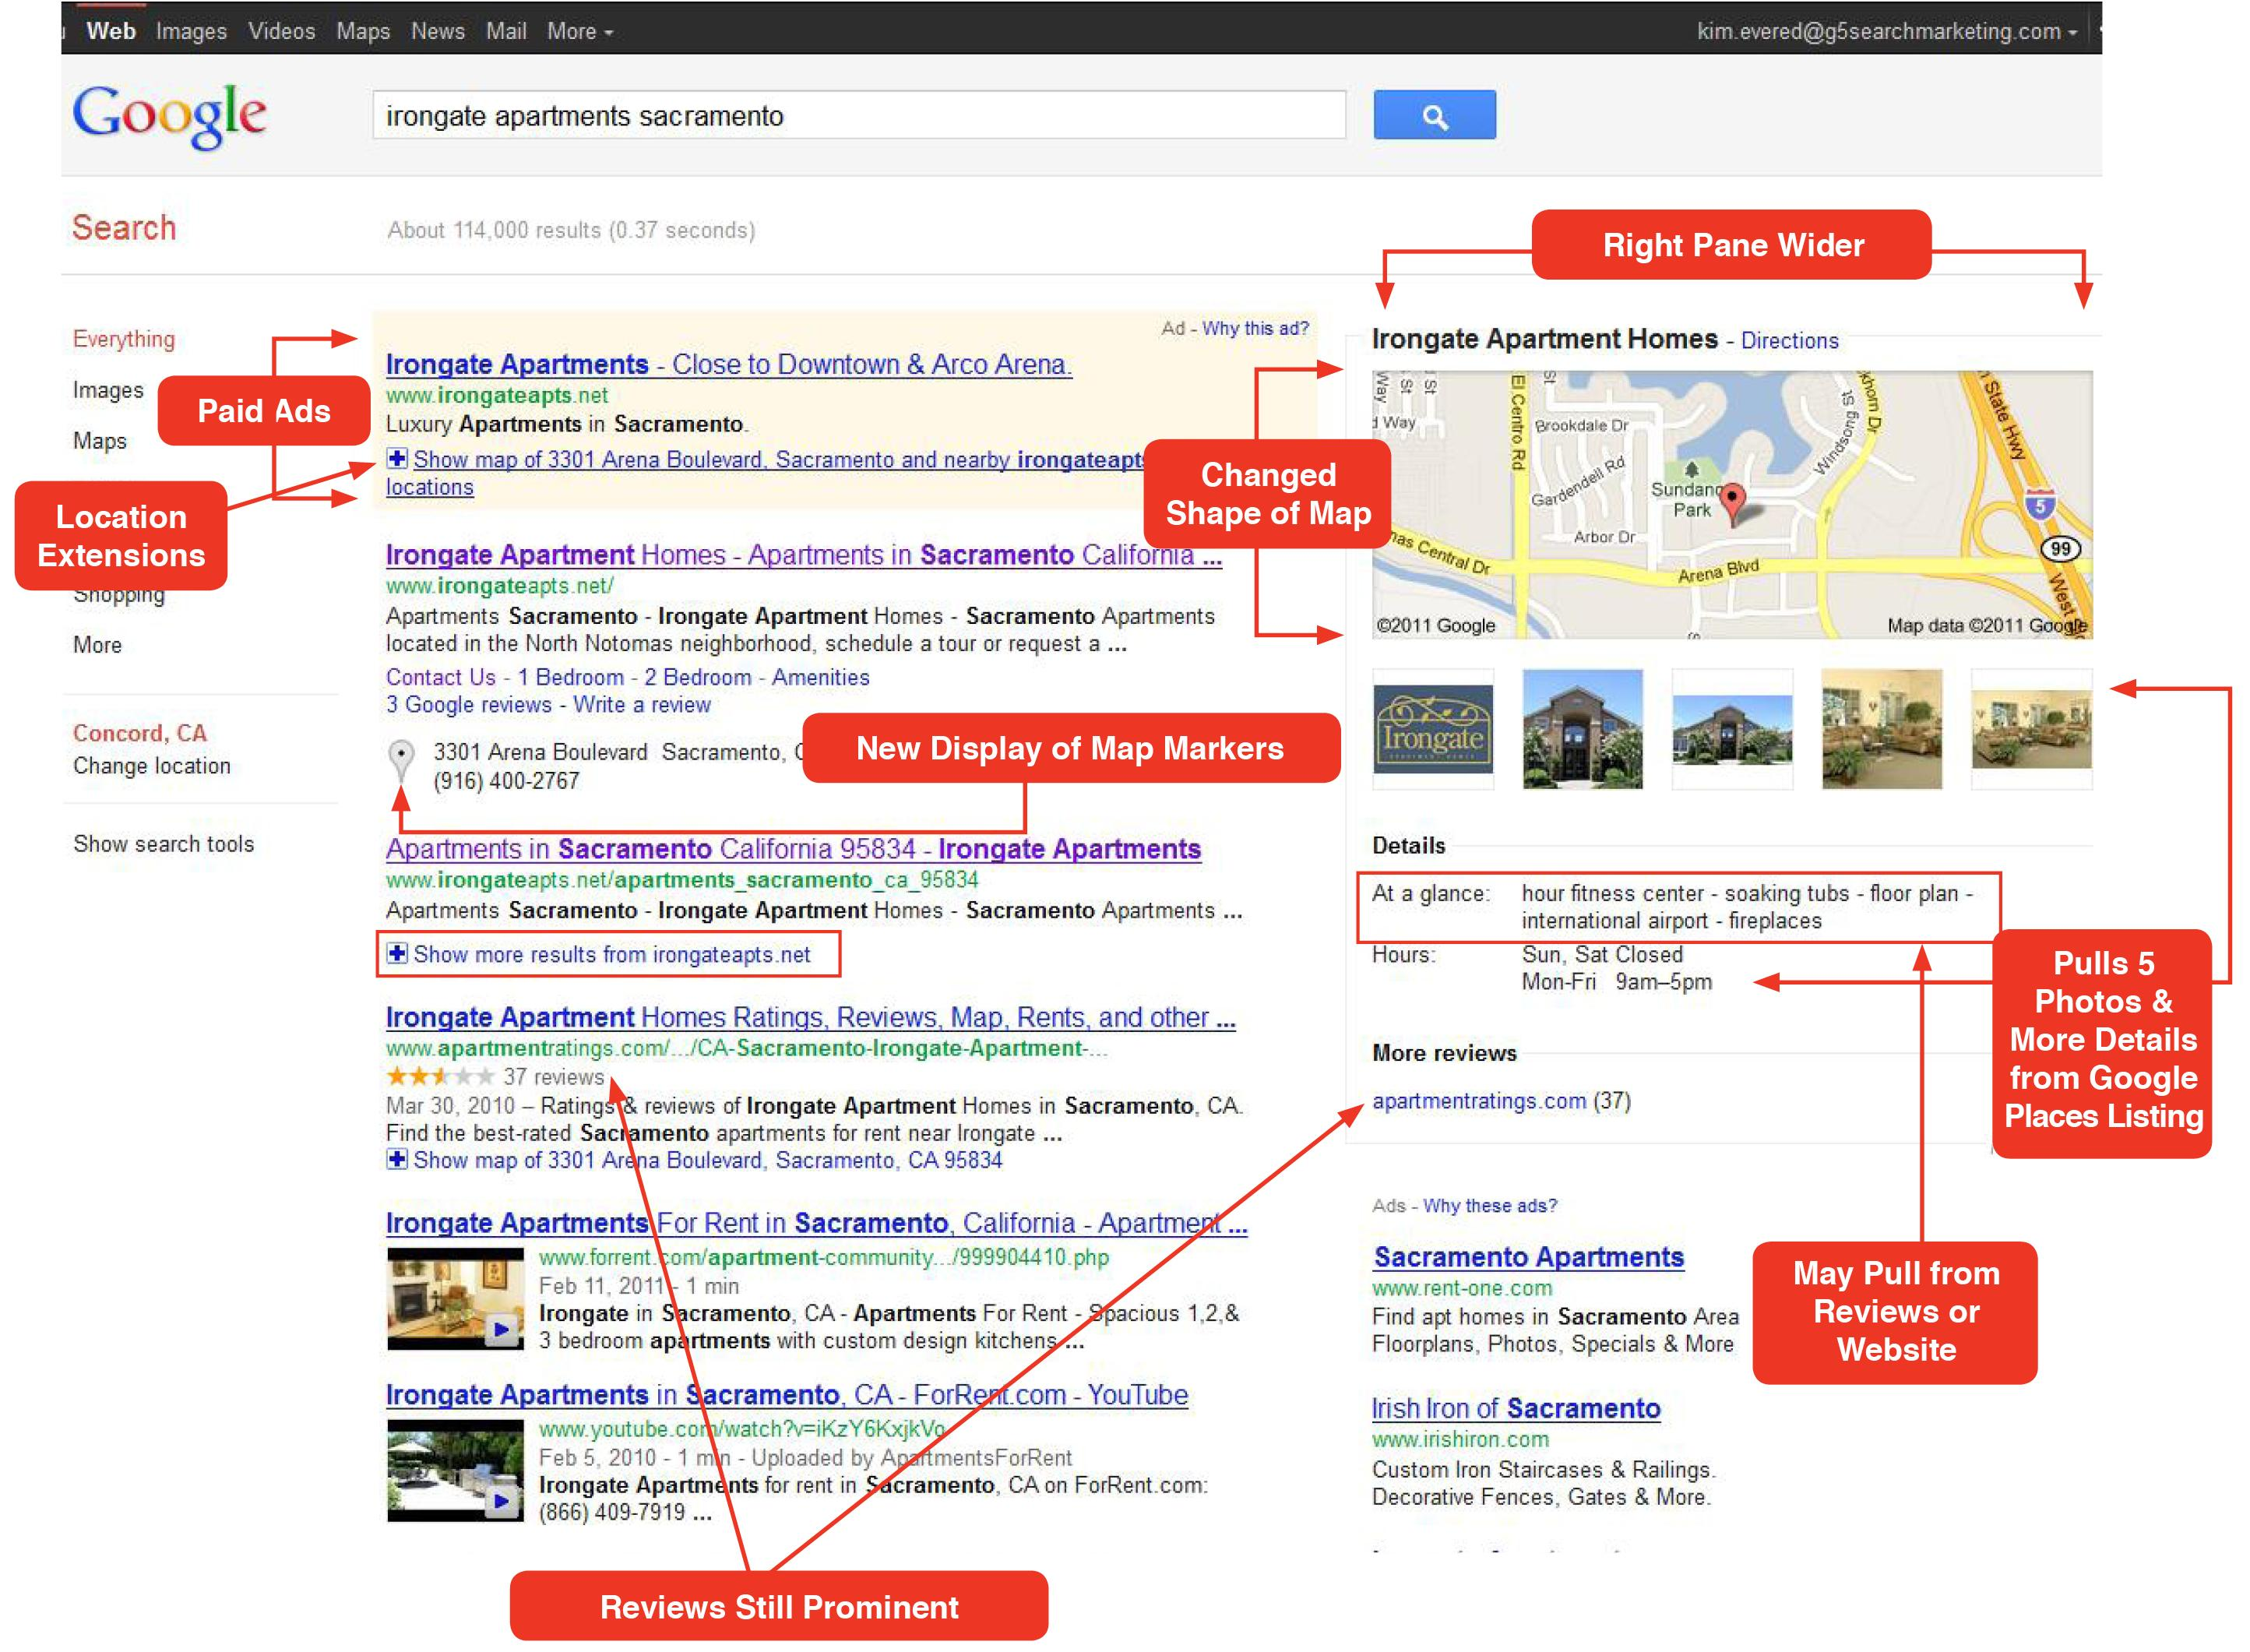 SERPS-november2011-changes